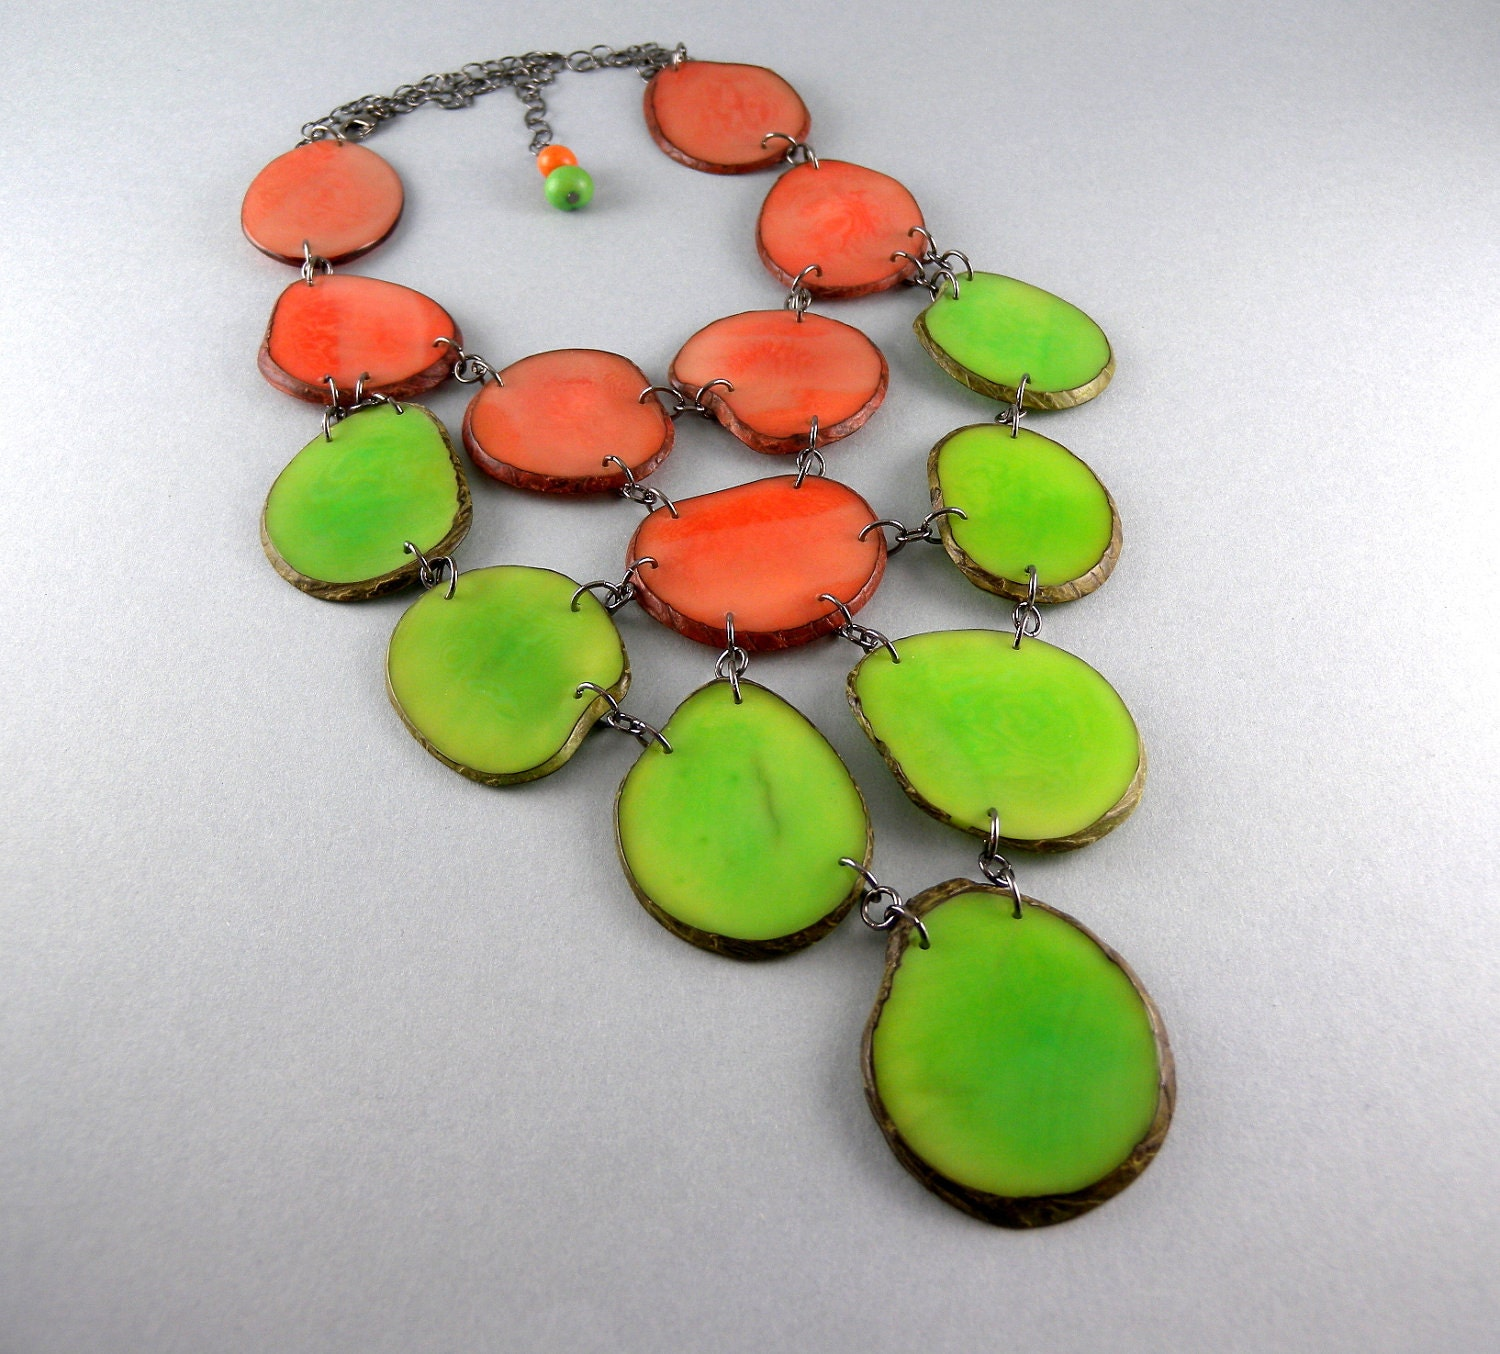 Honeydew Green and Cantaloupe Orange Eco Friendly Tagua Necklace Bib with Free Shipping - decoratethediva